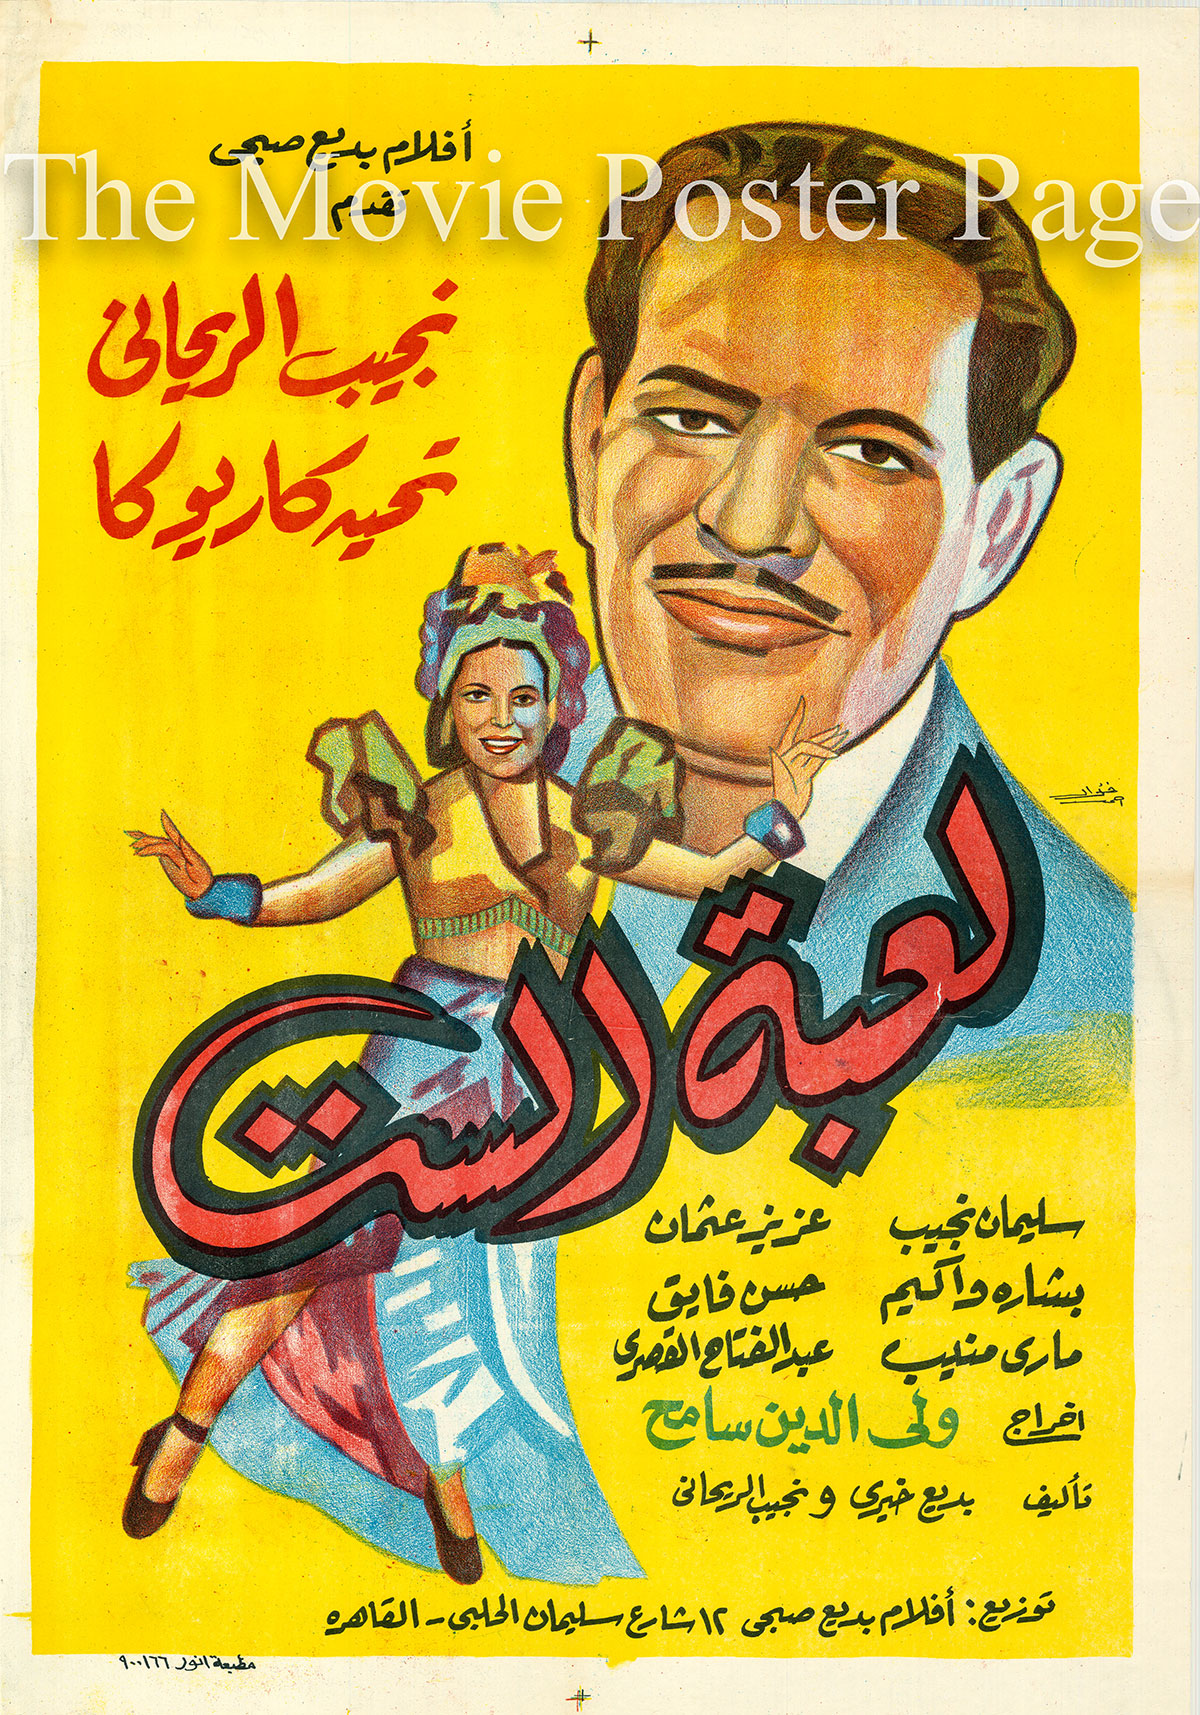 Pictured is an Egyptian promotional poster for the 1946 Wali Eddine Sameh film The Lady's Puppet starring Naguib Al Rihani based on the novel The Devil is a Woman by Pierre Louys.